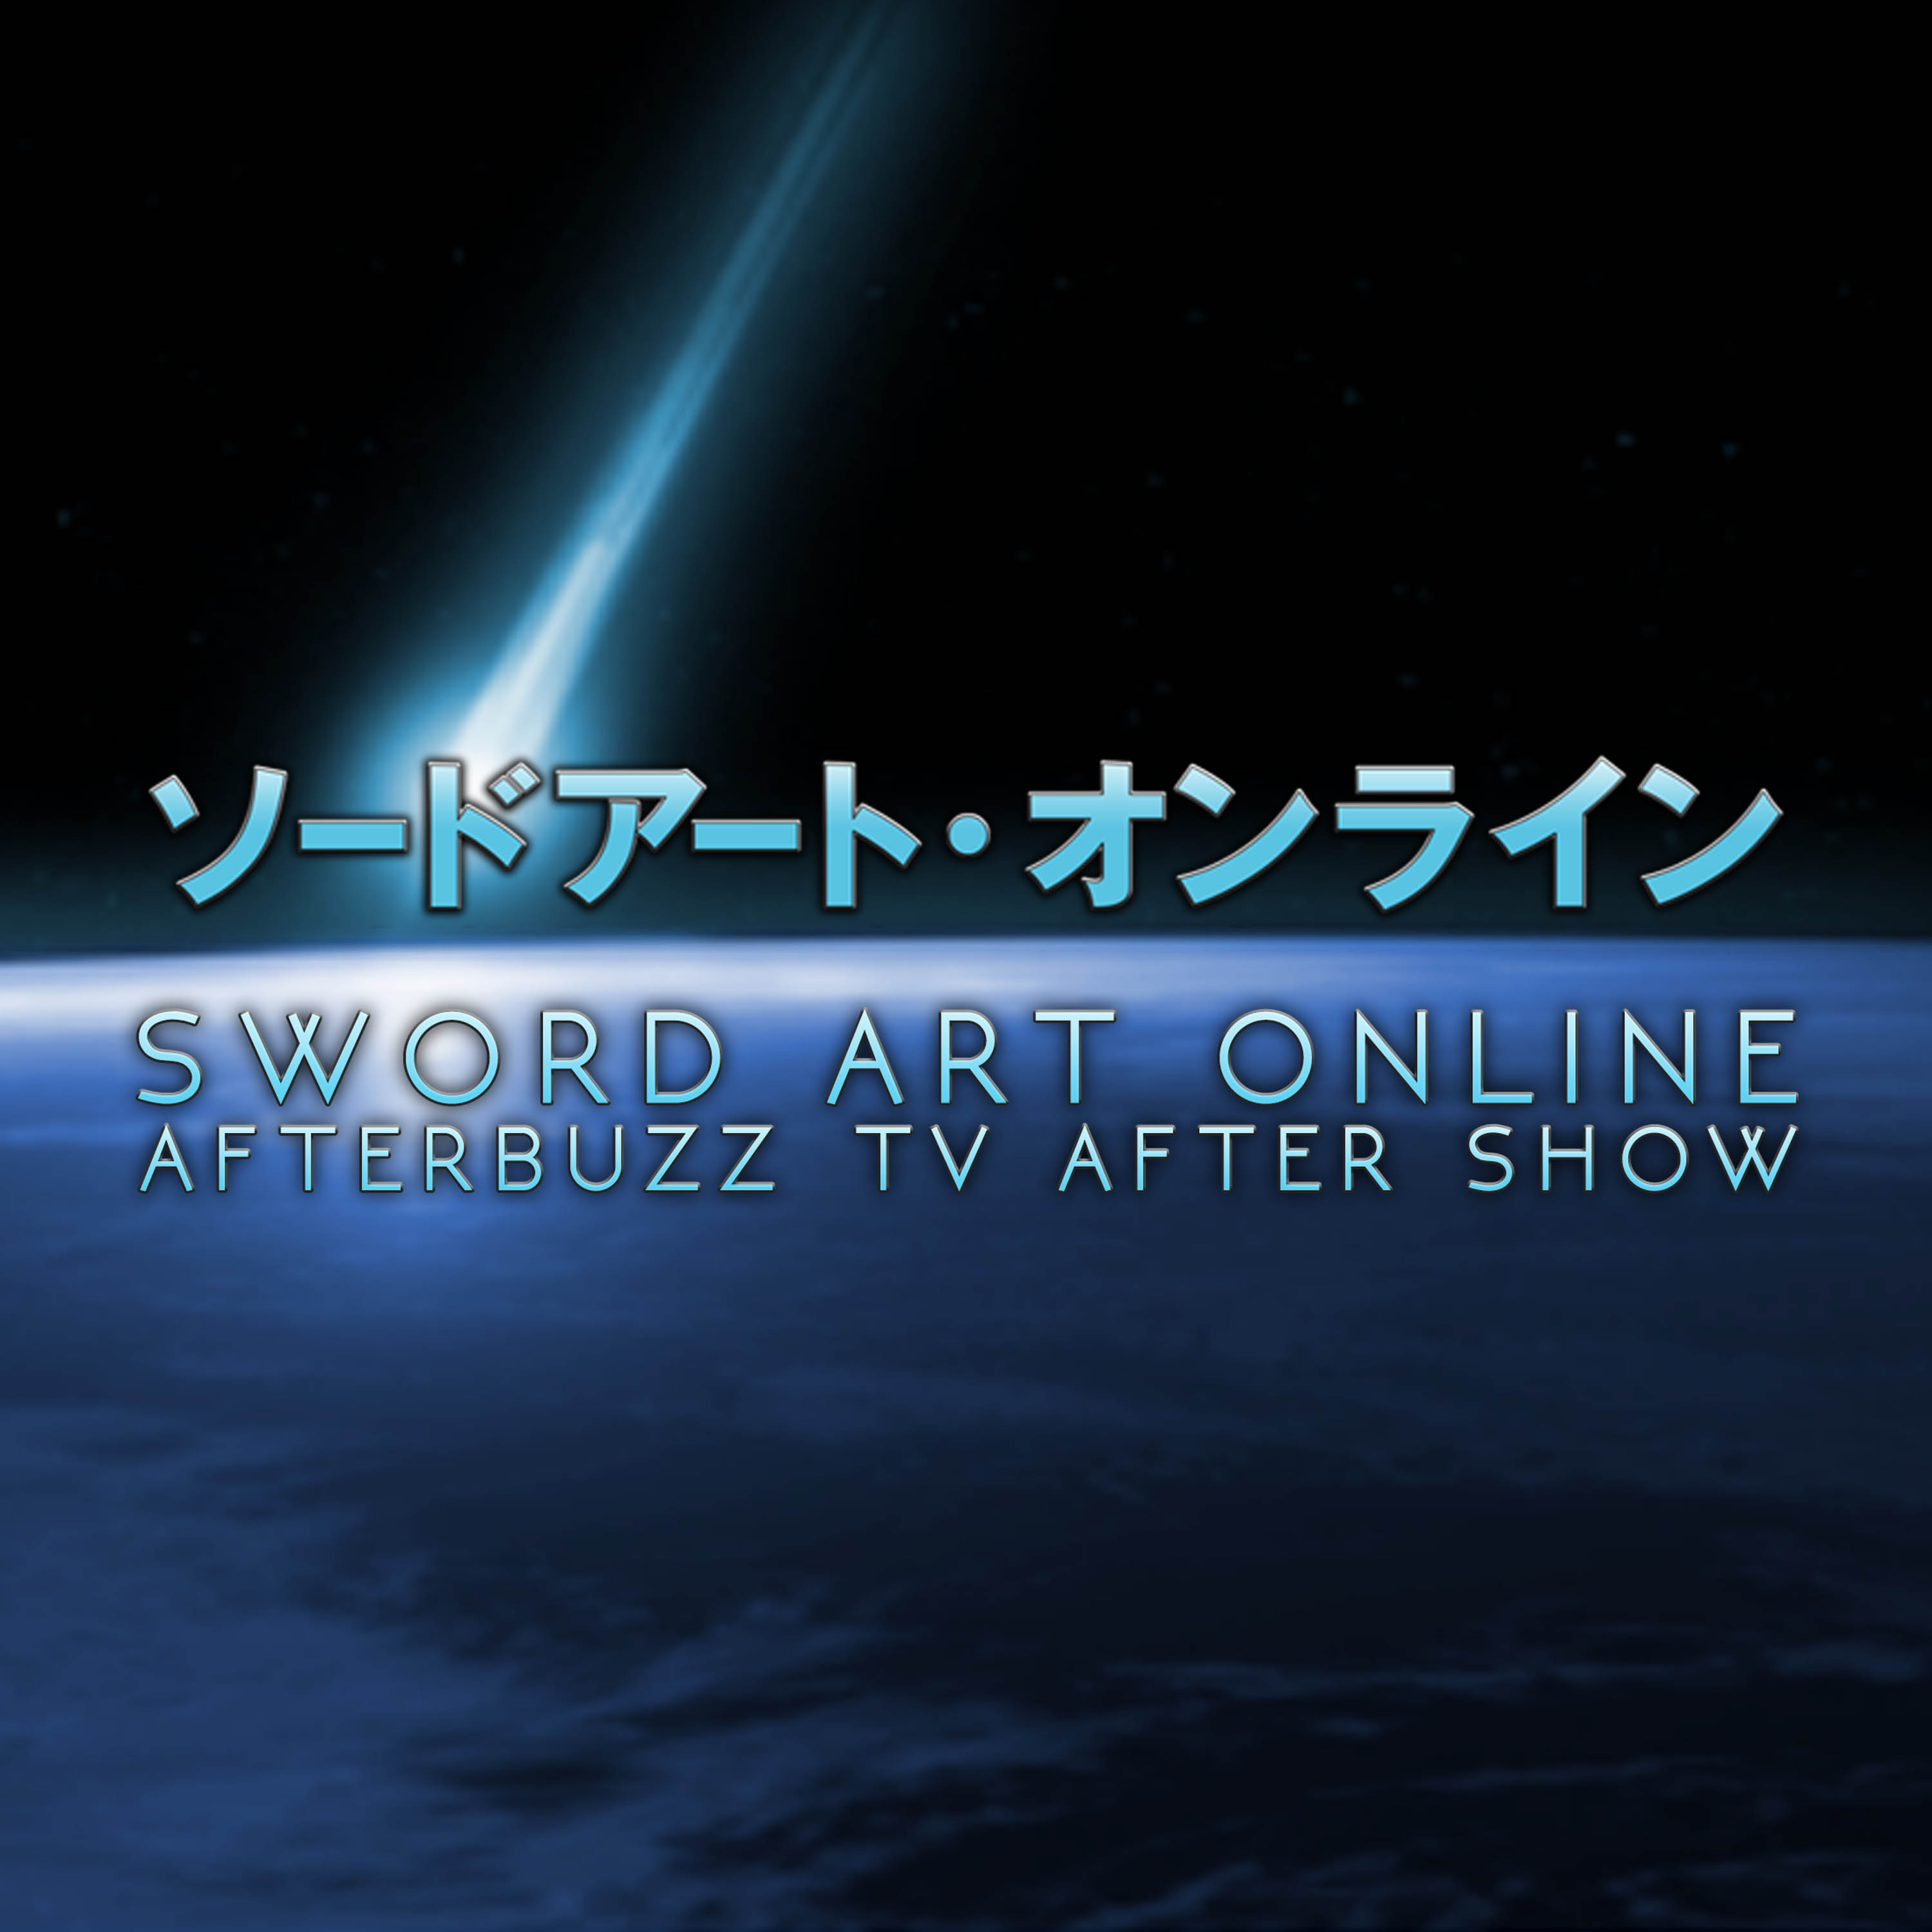 Sword Art Online After Show